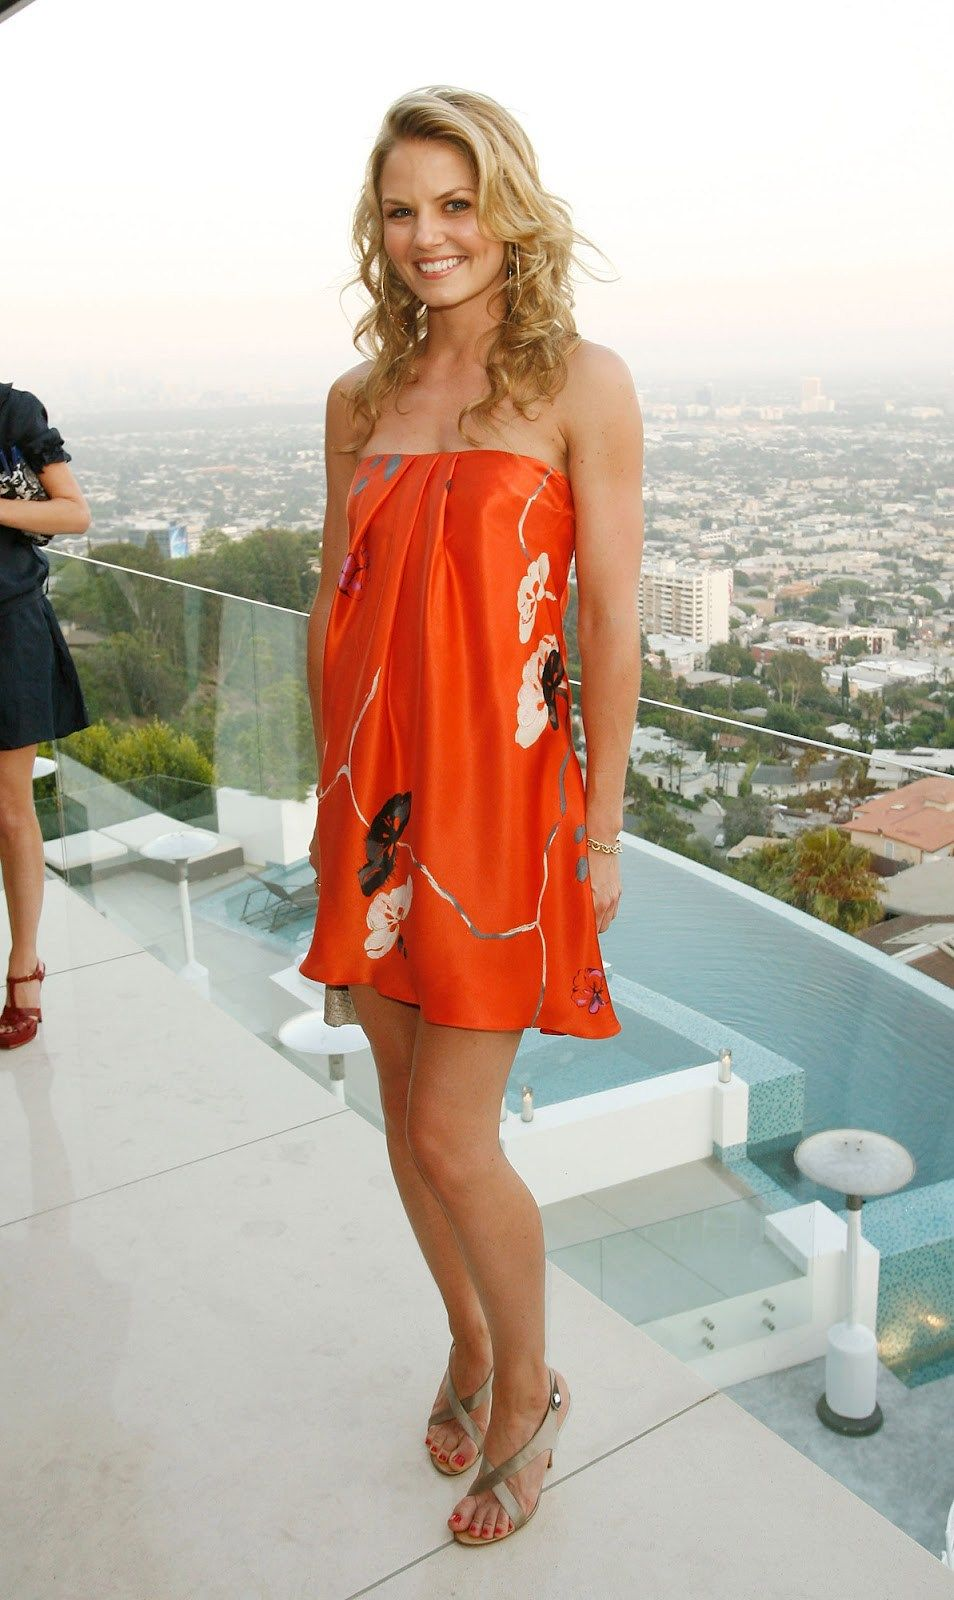 Jennifer Morrison naked (44 photos), Sexy, Cleavage, Instagram, see through 2006